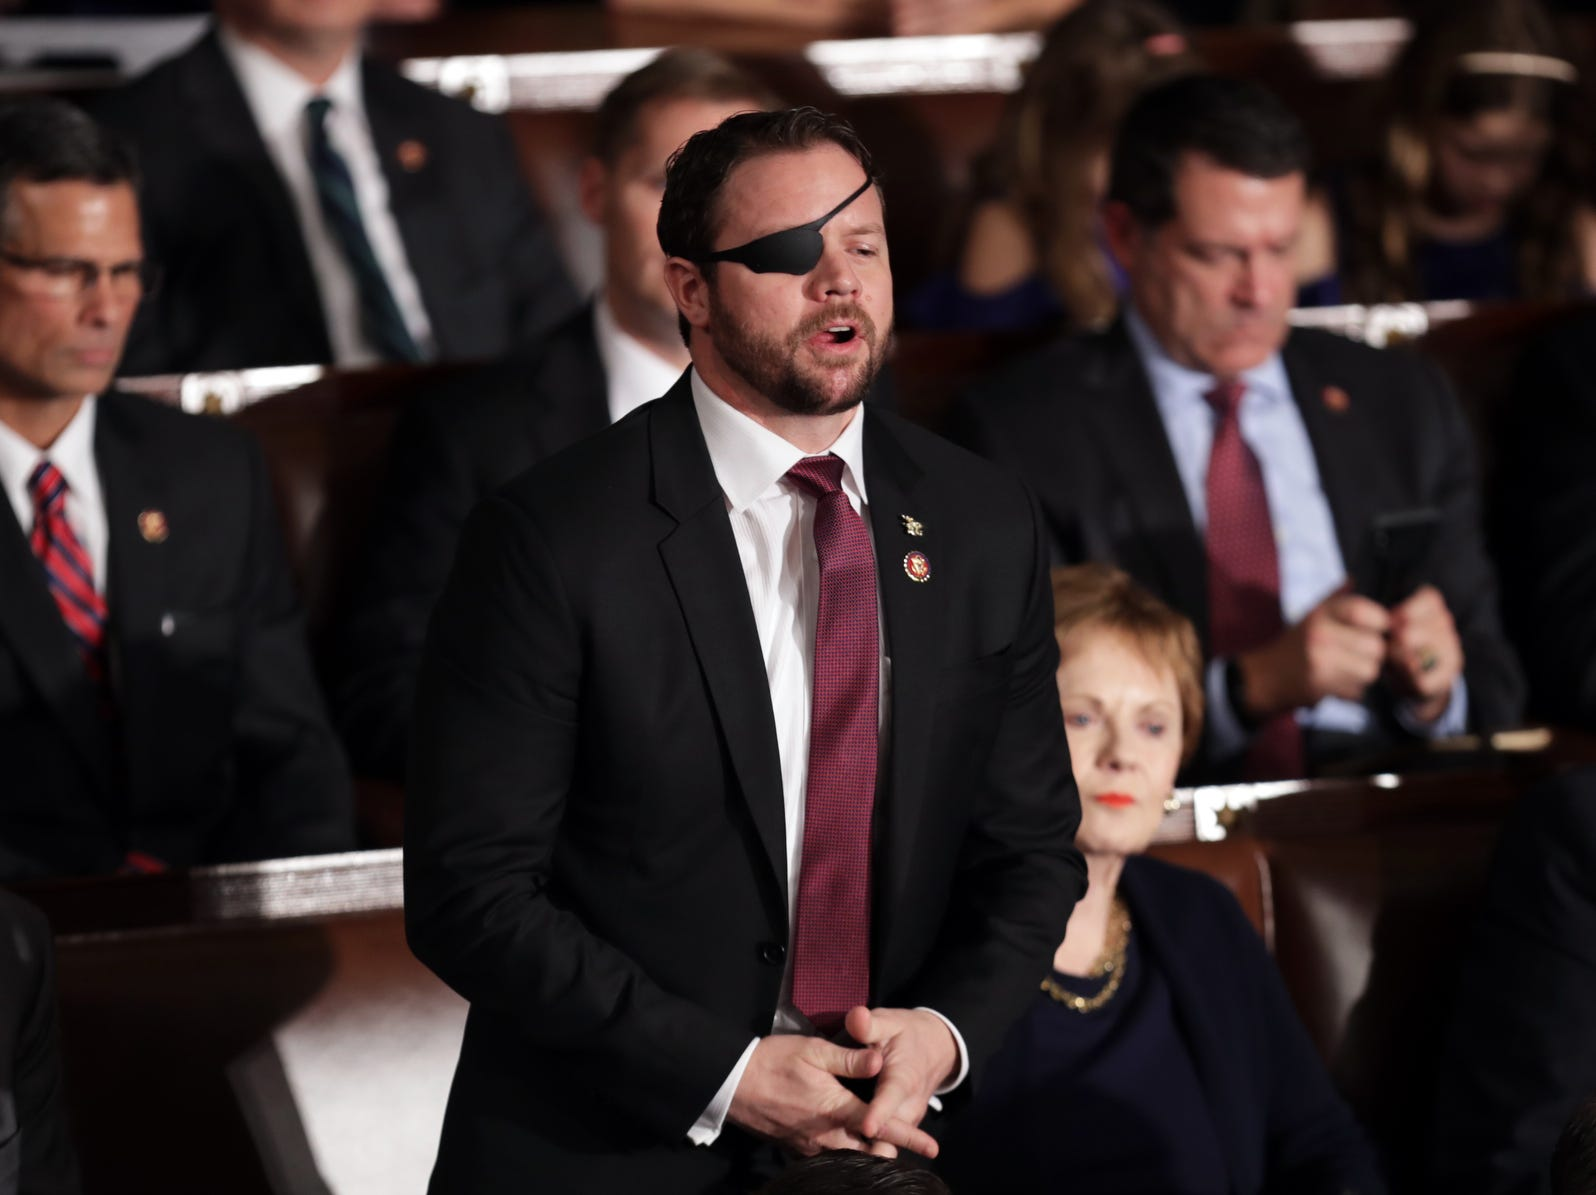 Member-elect Dan Crenshaw (R-TX) votes for House Majority Leader Kevin McCarthy (R-CA) during the first session of the 116th Congress.